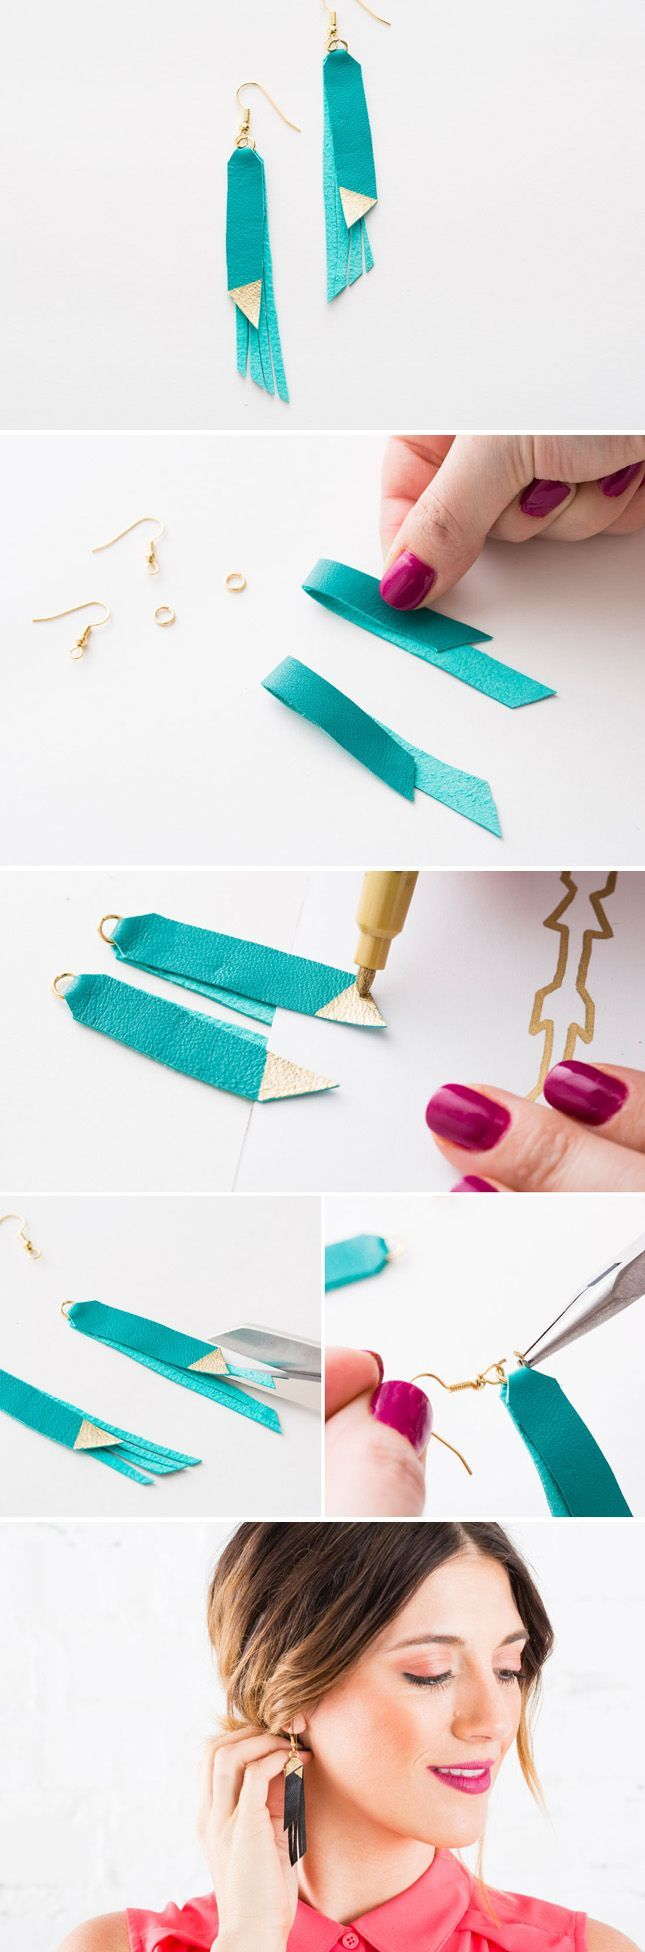 Make your own leather fringe jewelry with this kit. Buy it here: go.brit.co/1zQFdUr